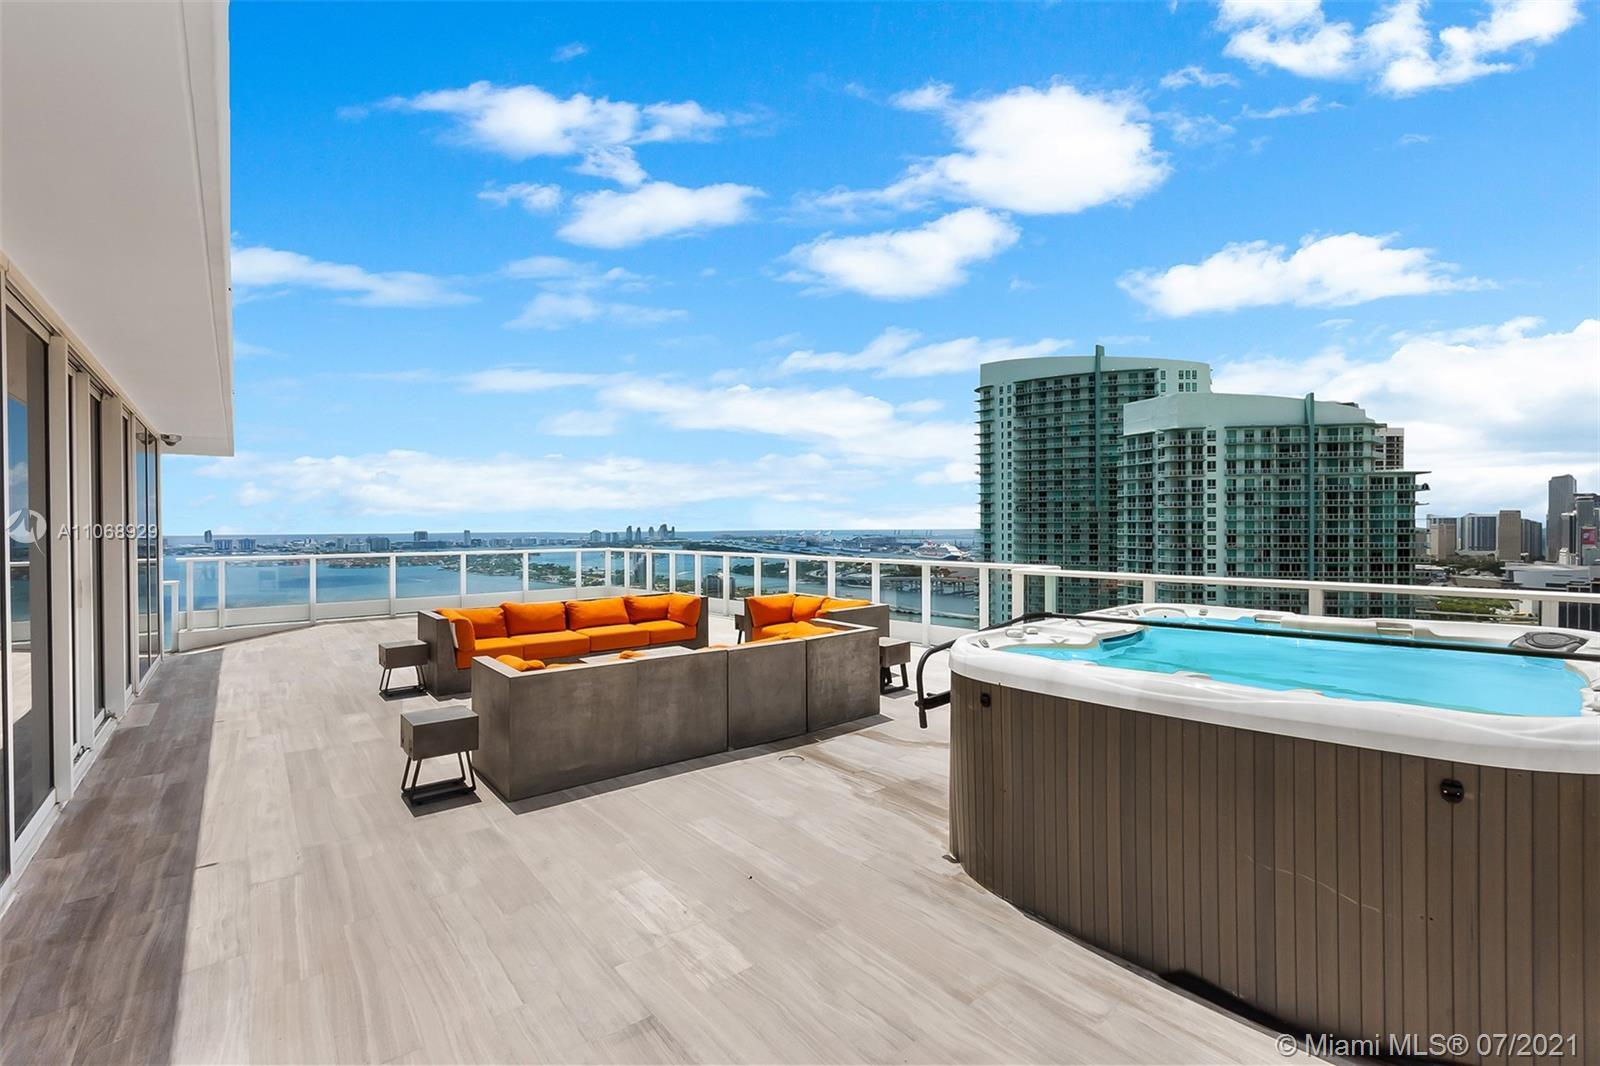 Welcome to PH1 - This exquisitely designed and turnkey furnished condo offers an impressive 180 degr